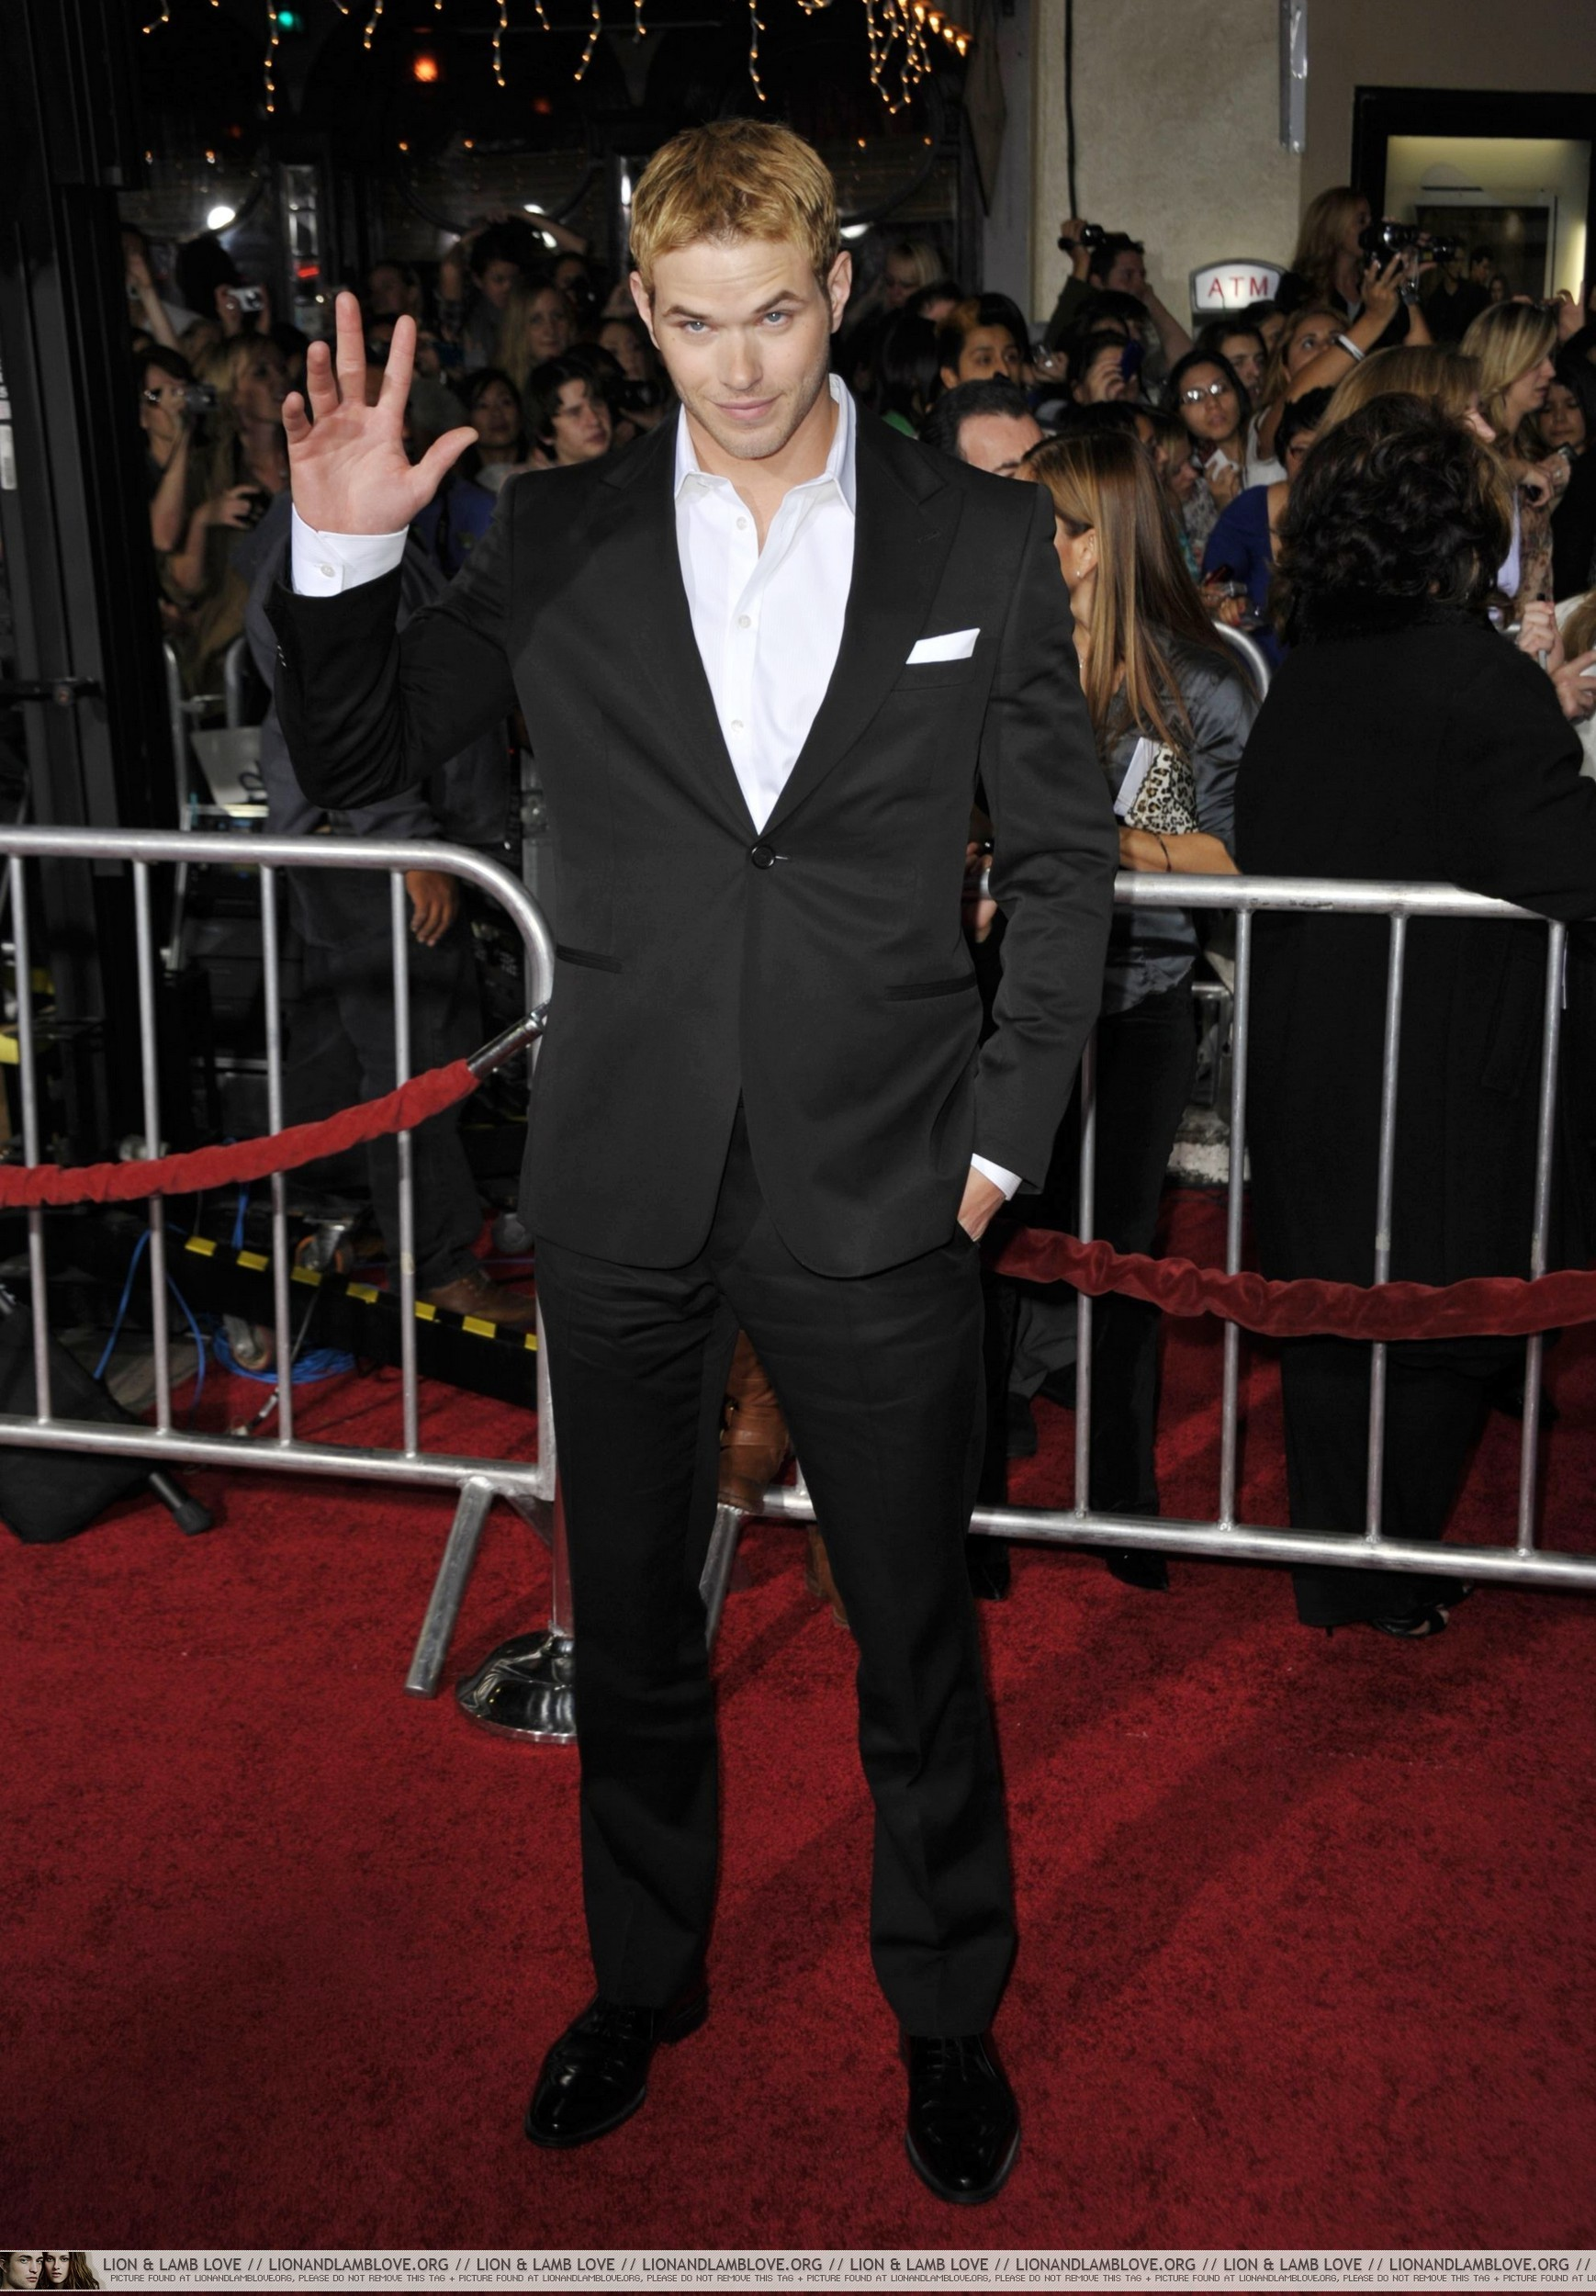 http://images2.fanpop.com/image/photos/9000000/New-Moon-premiere-twilight-series-9087678-1738-2500.jpg